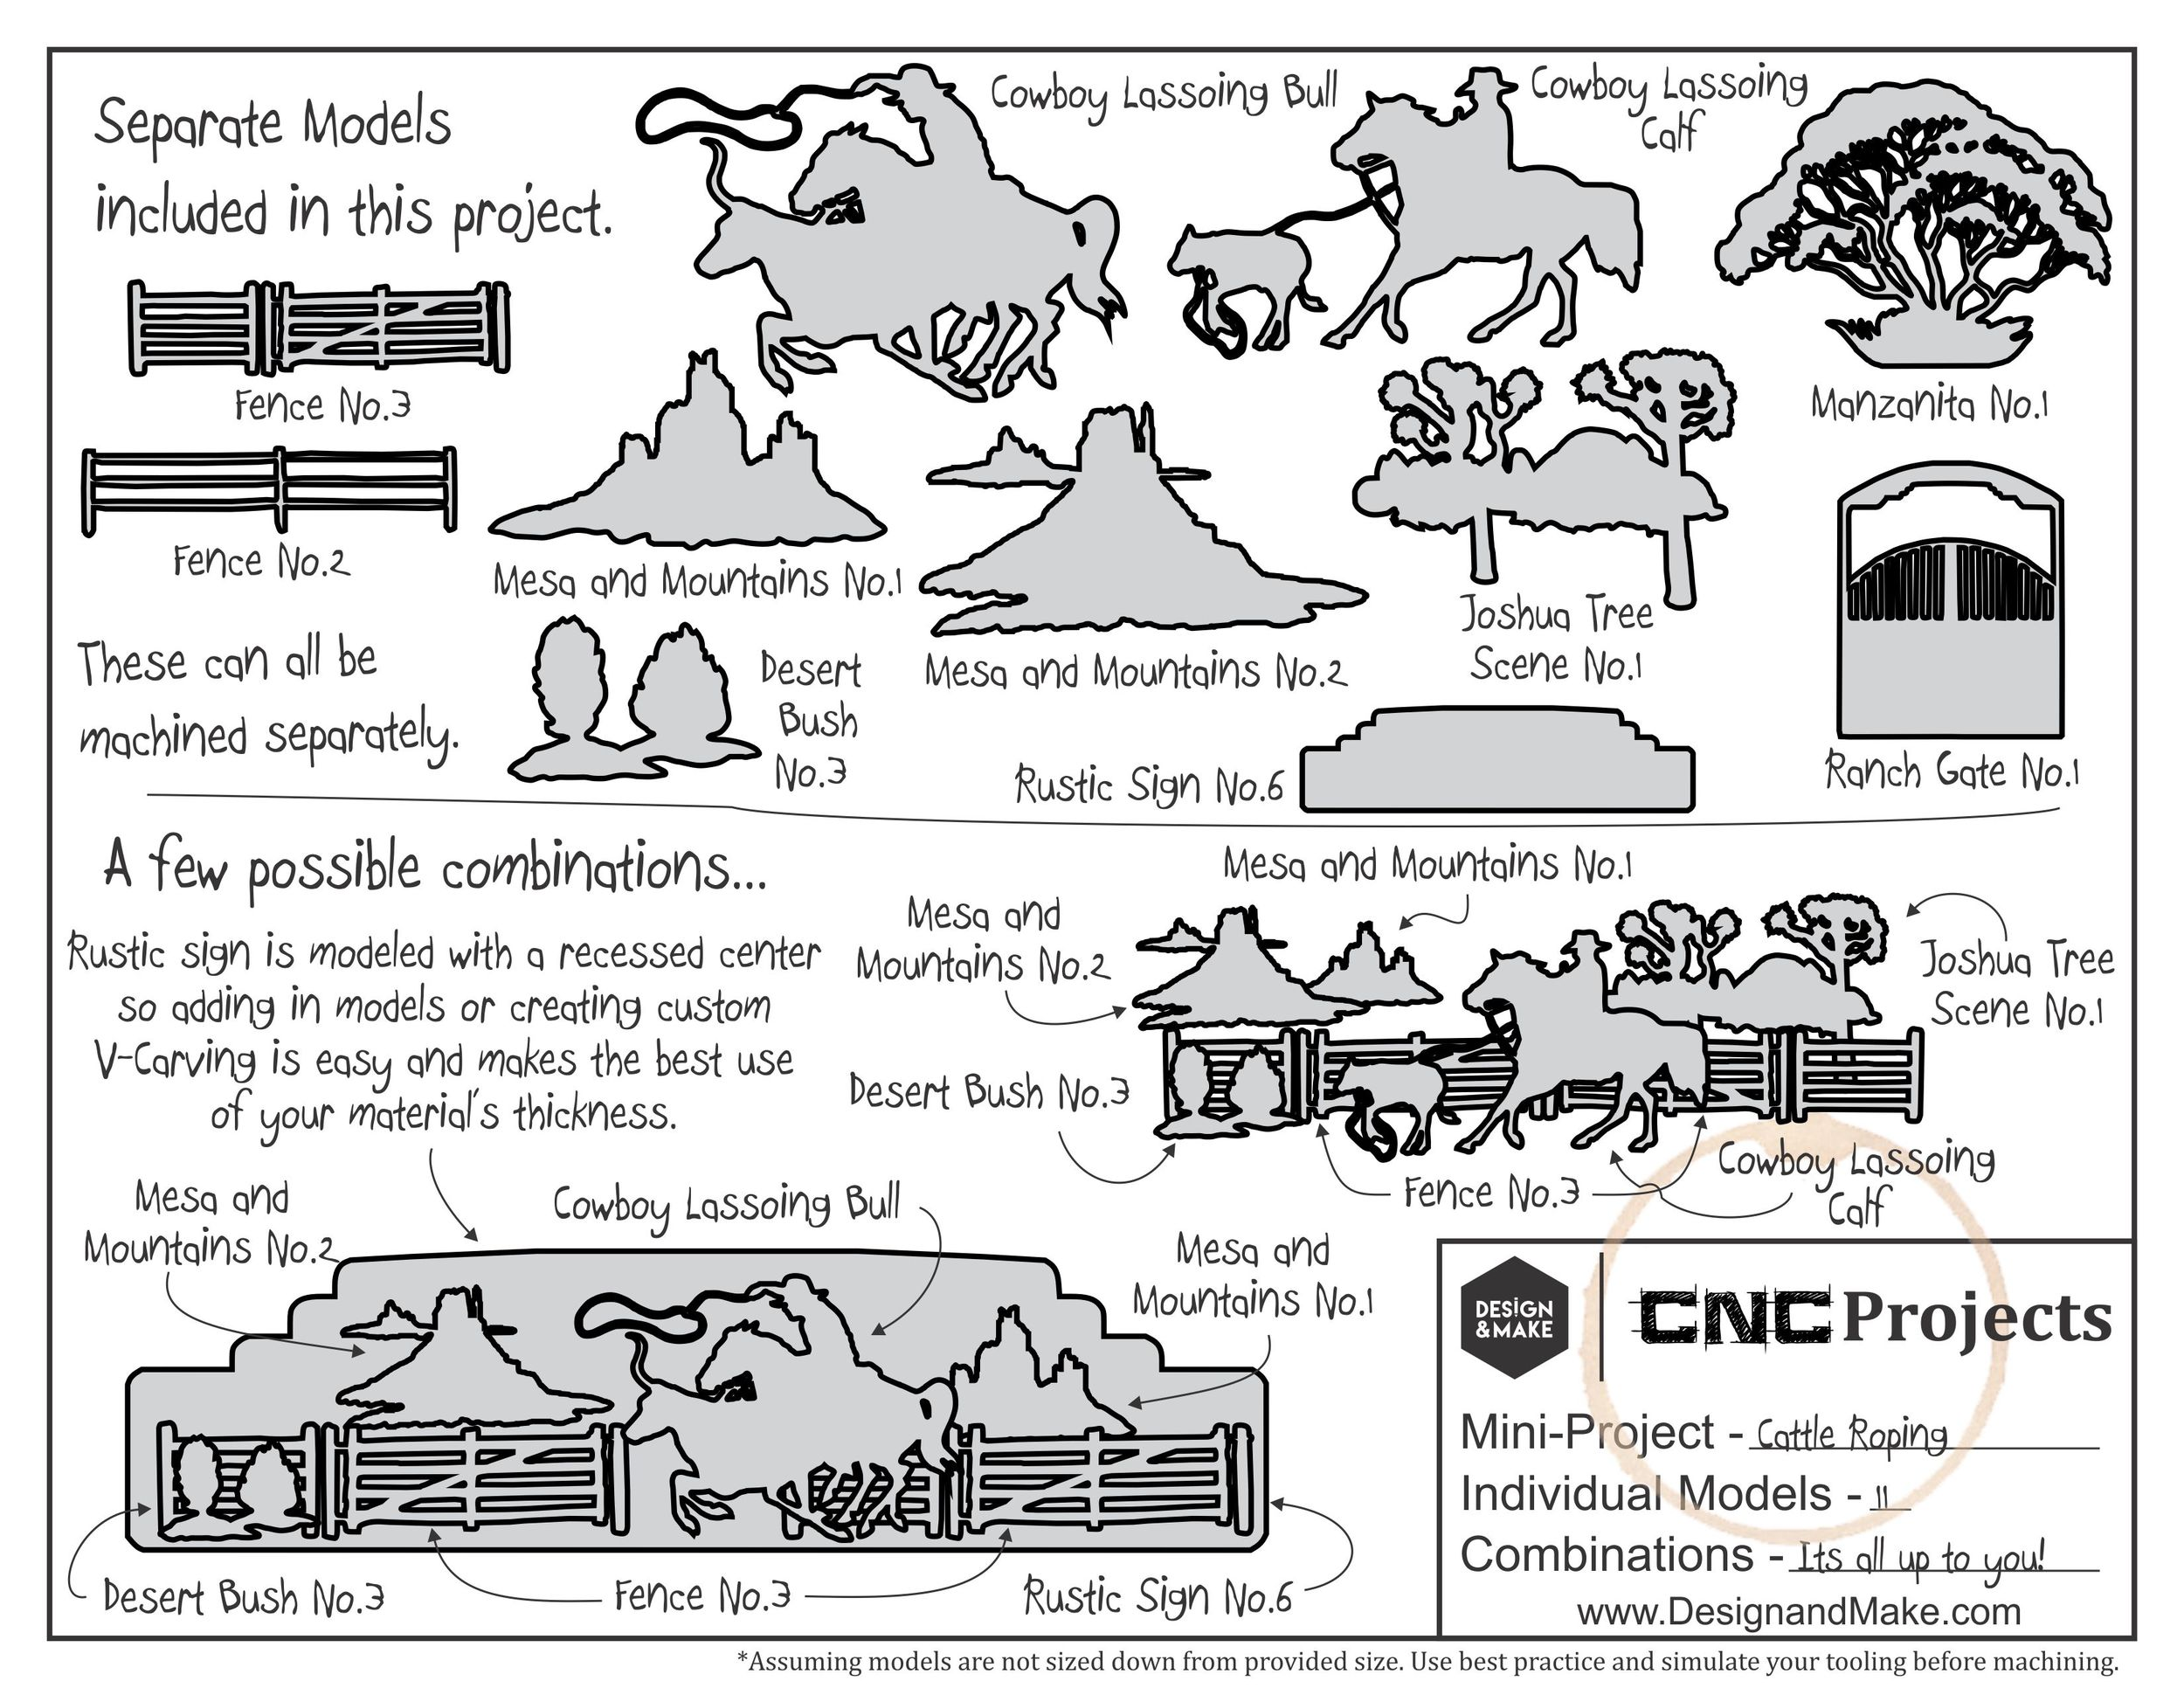 Project Sheet - Click to enlarge.